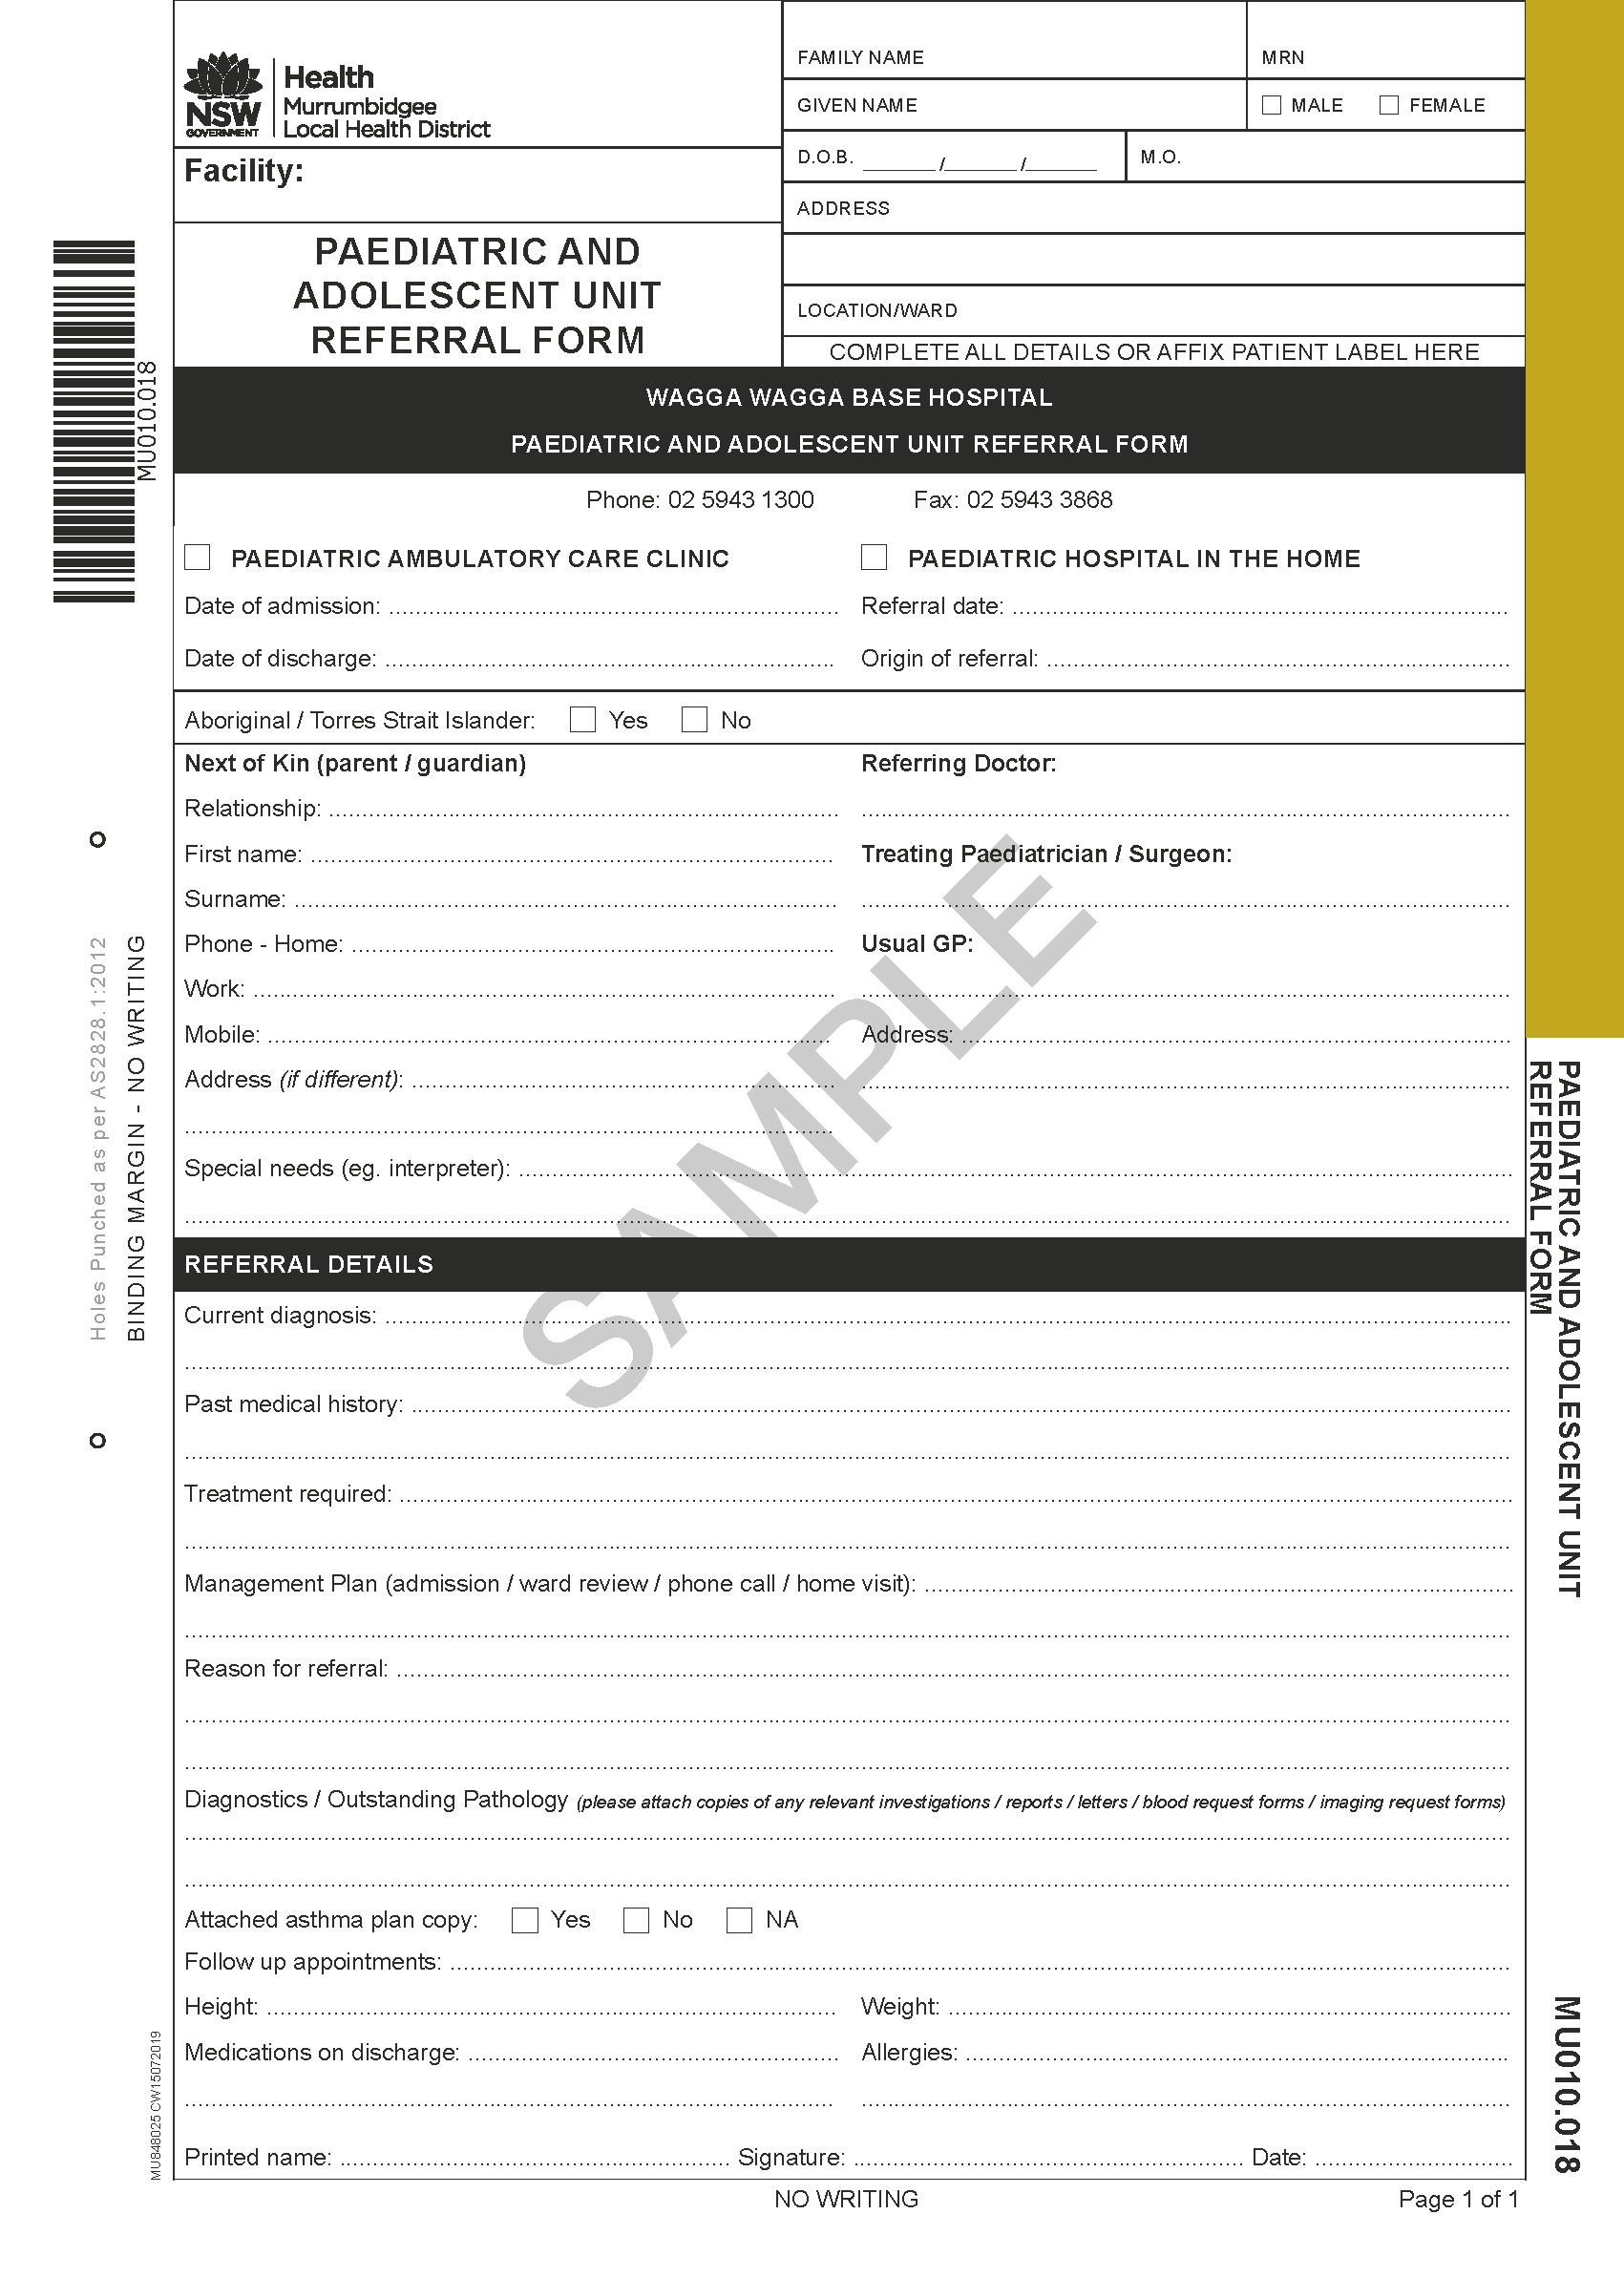 MU010.018 - Paediatric and Adolescent Unit Referral Form